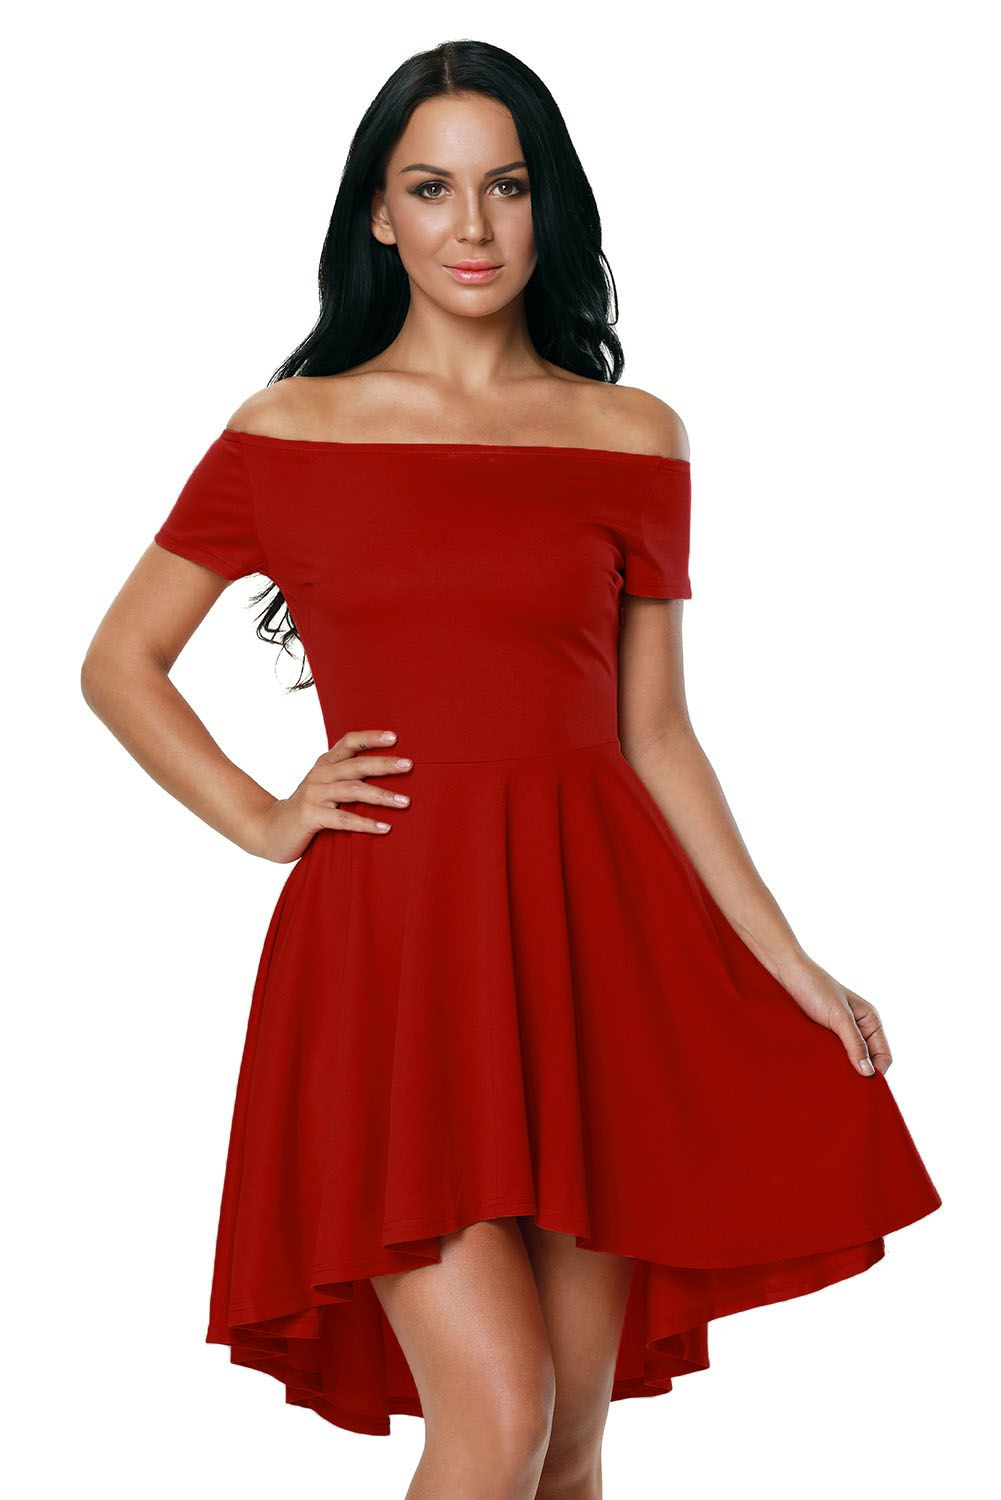 Red All The Rage Hot Skater Dress #silvesteroutfitdamen